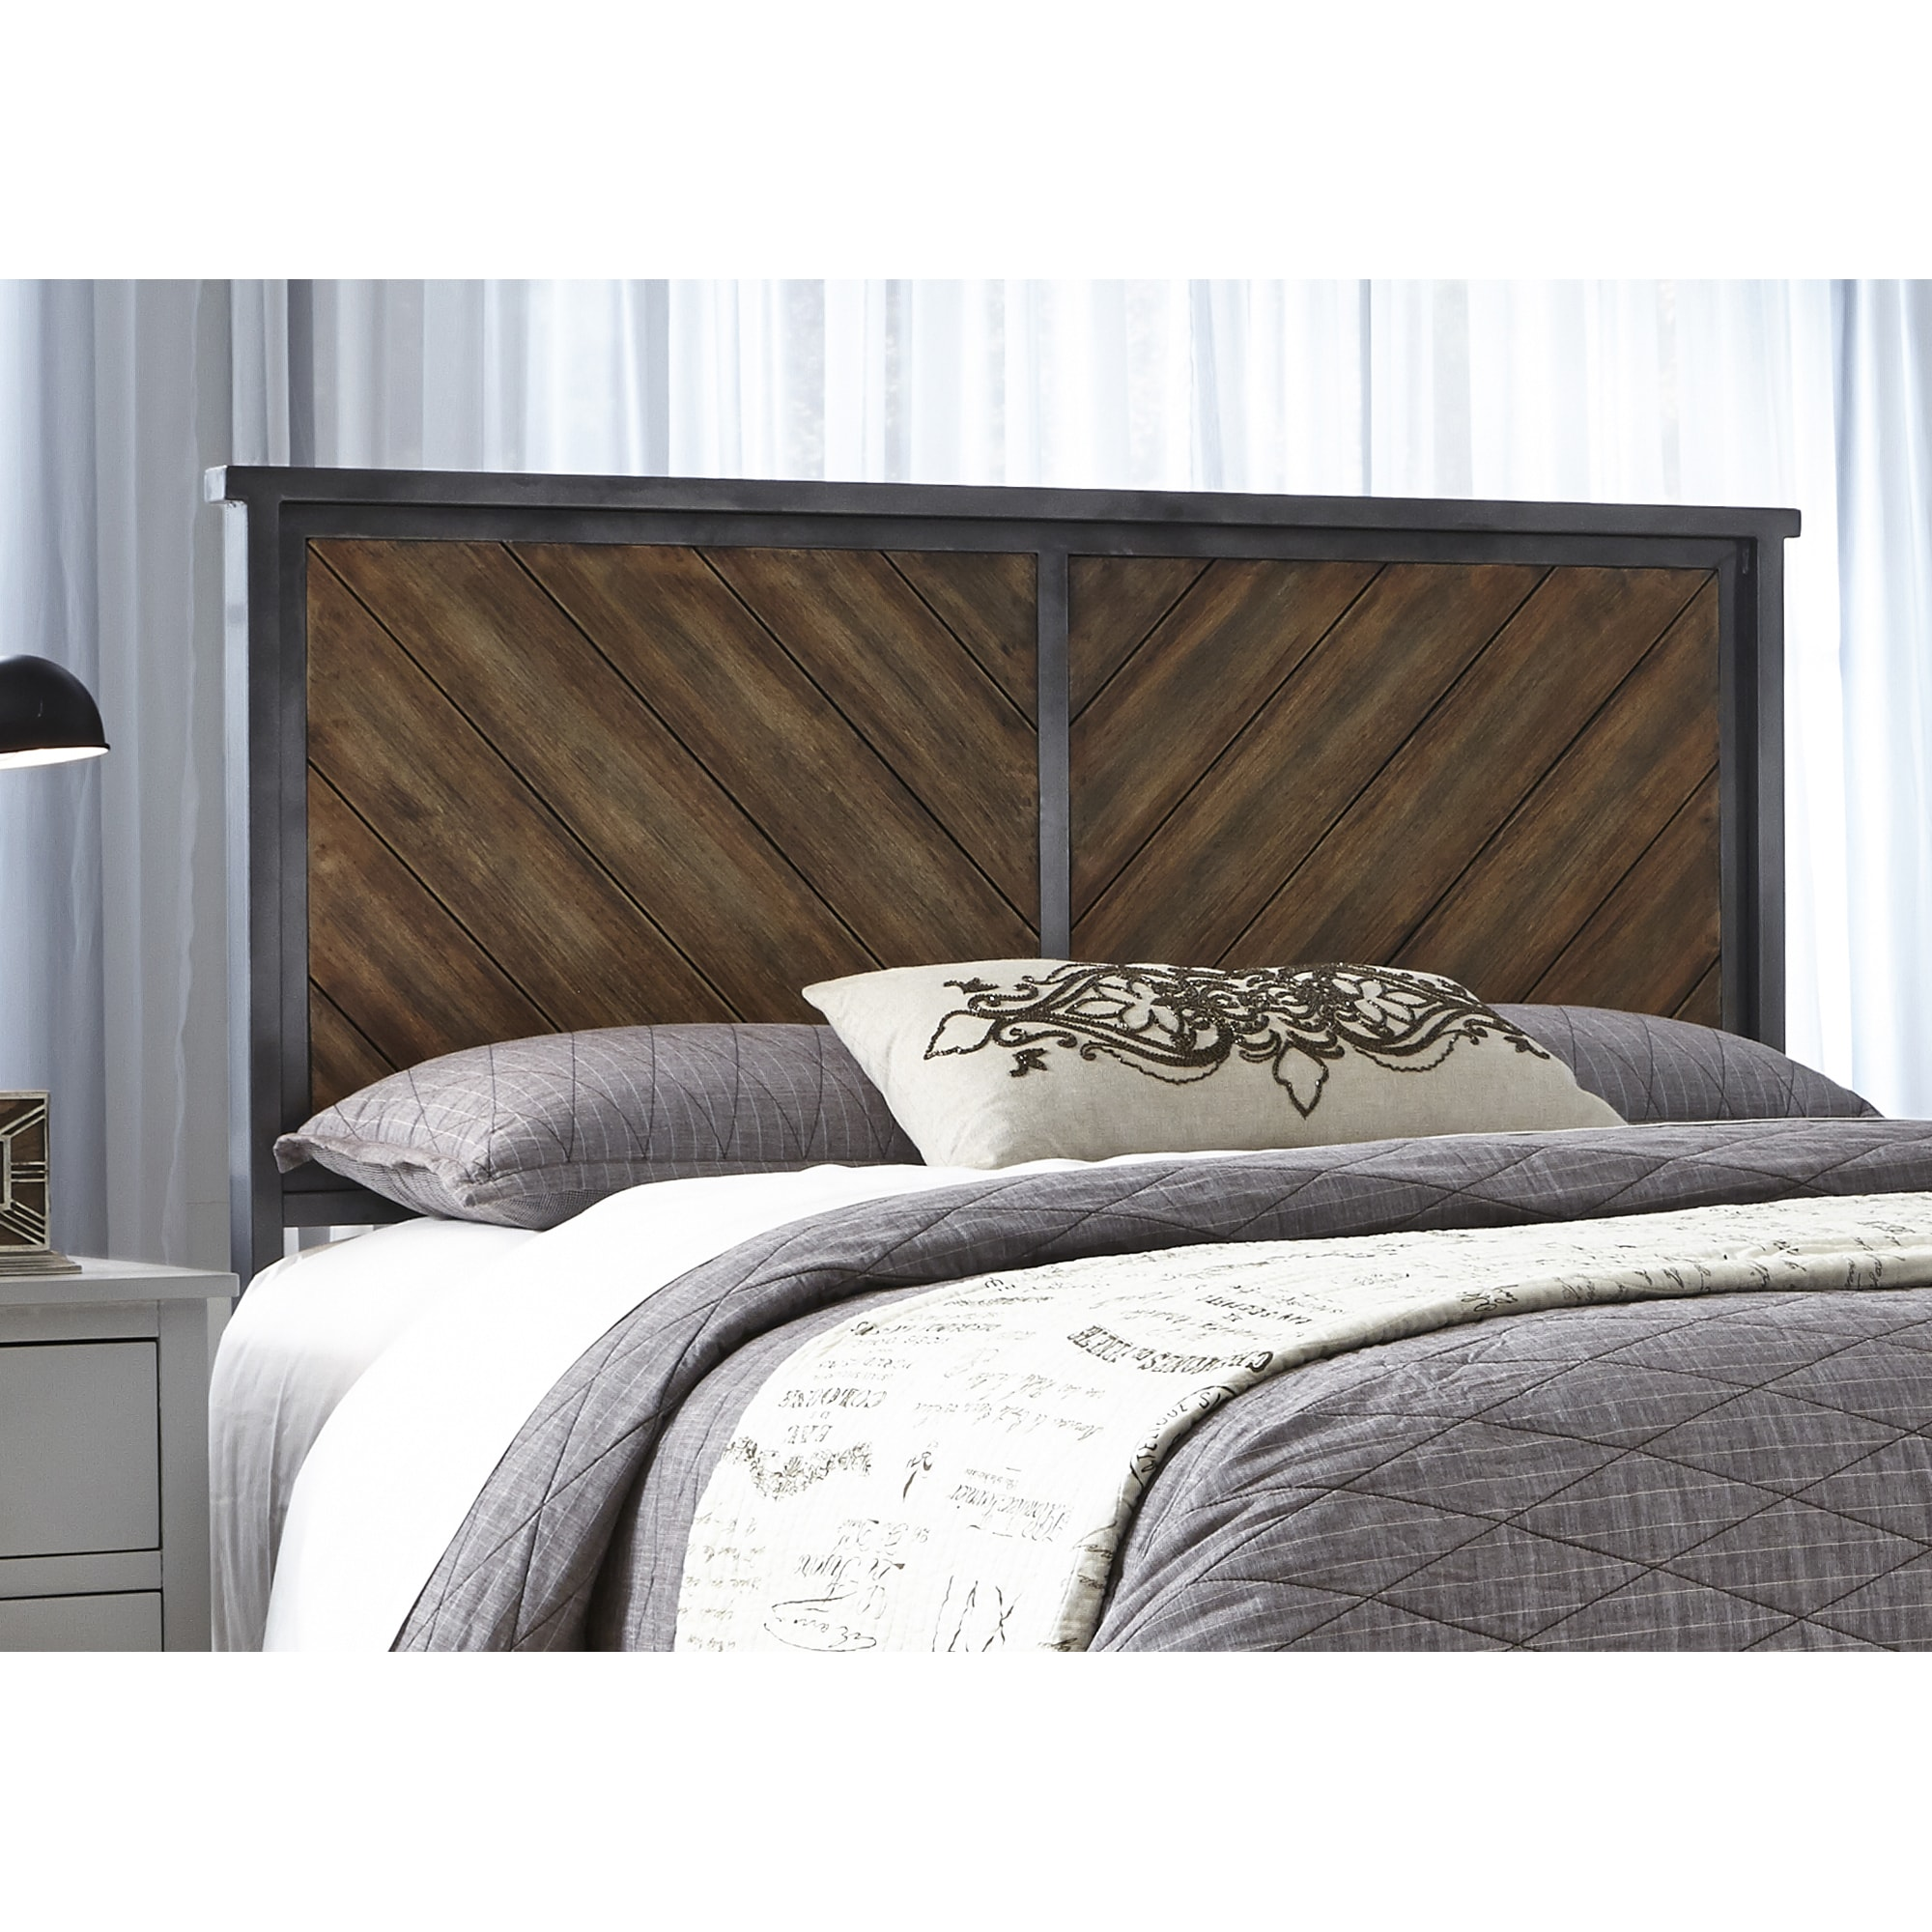 Shop Braden Metal Headboard Panel with Reclaimed Wood Design Printed ...